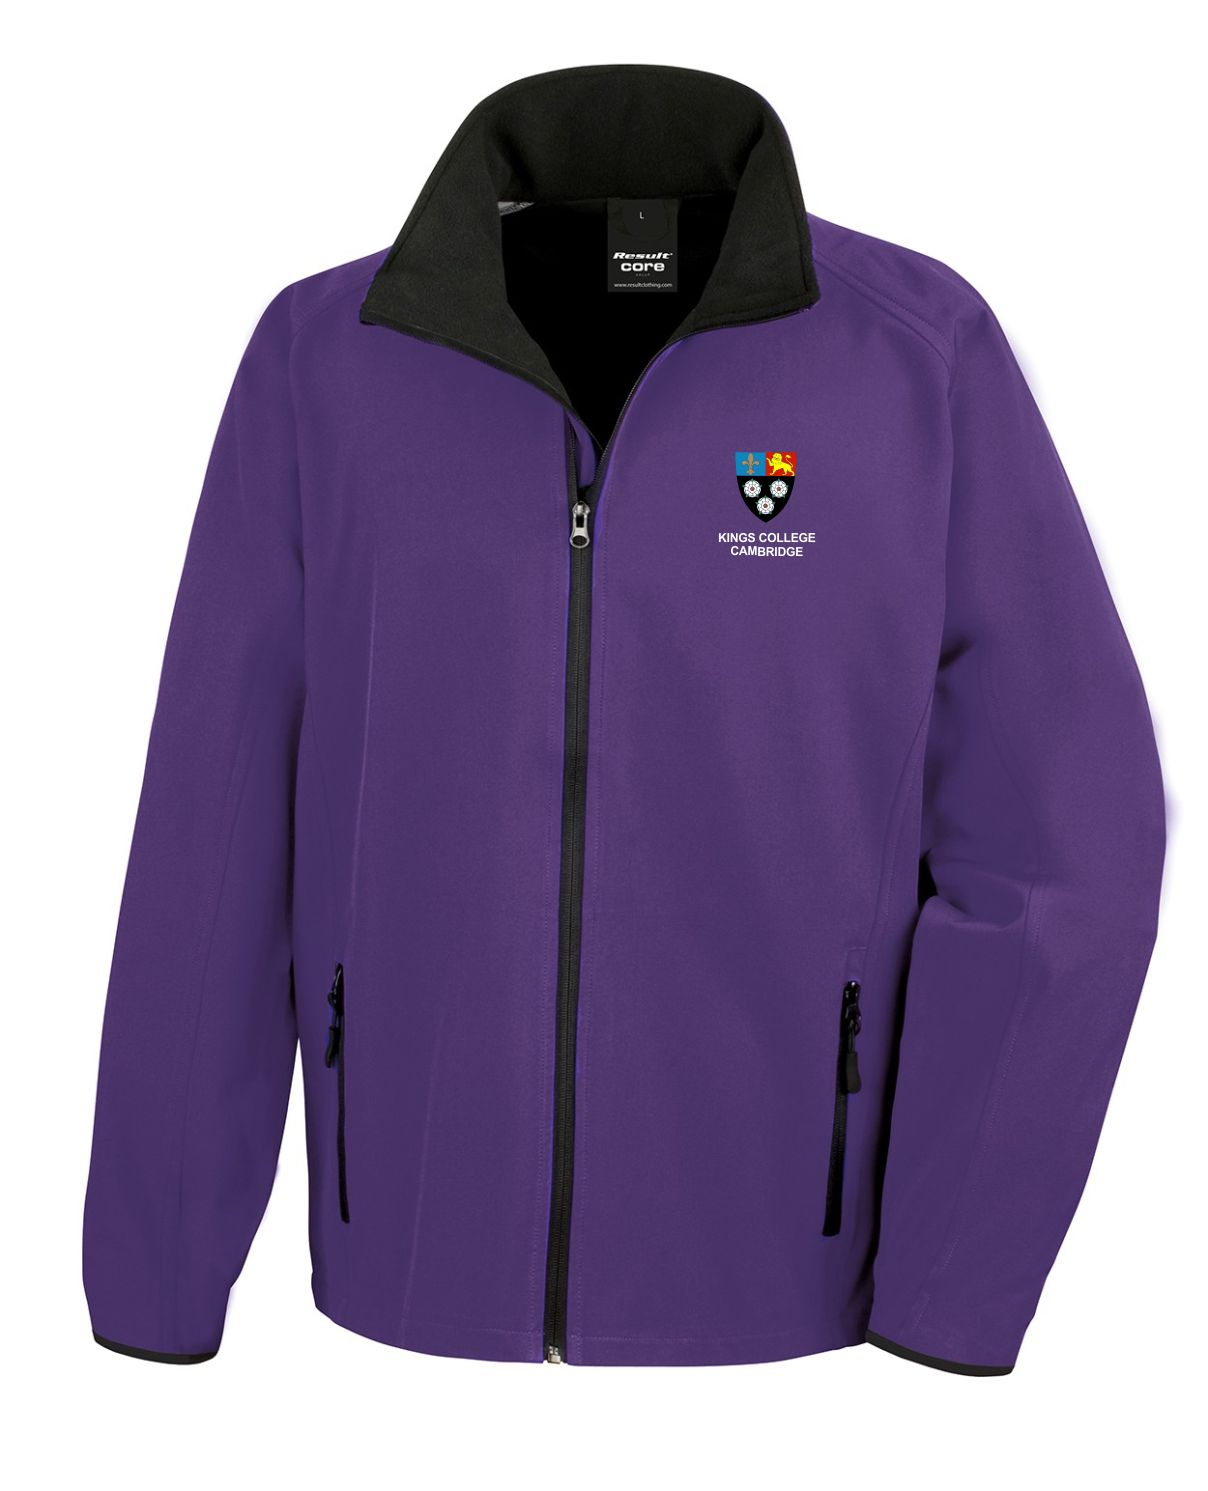 Kings College Cambridge Softshell Ladies Jacket